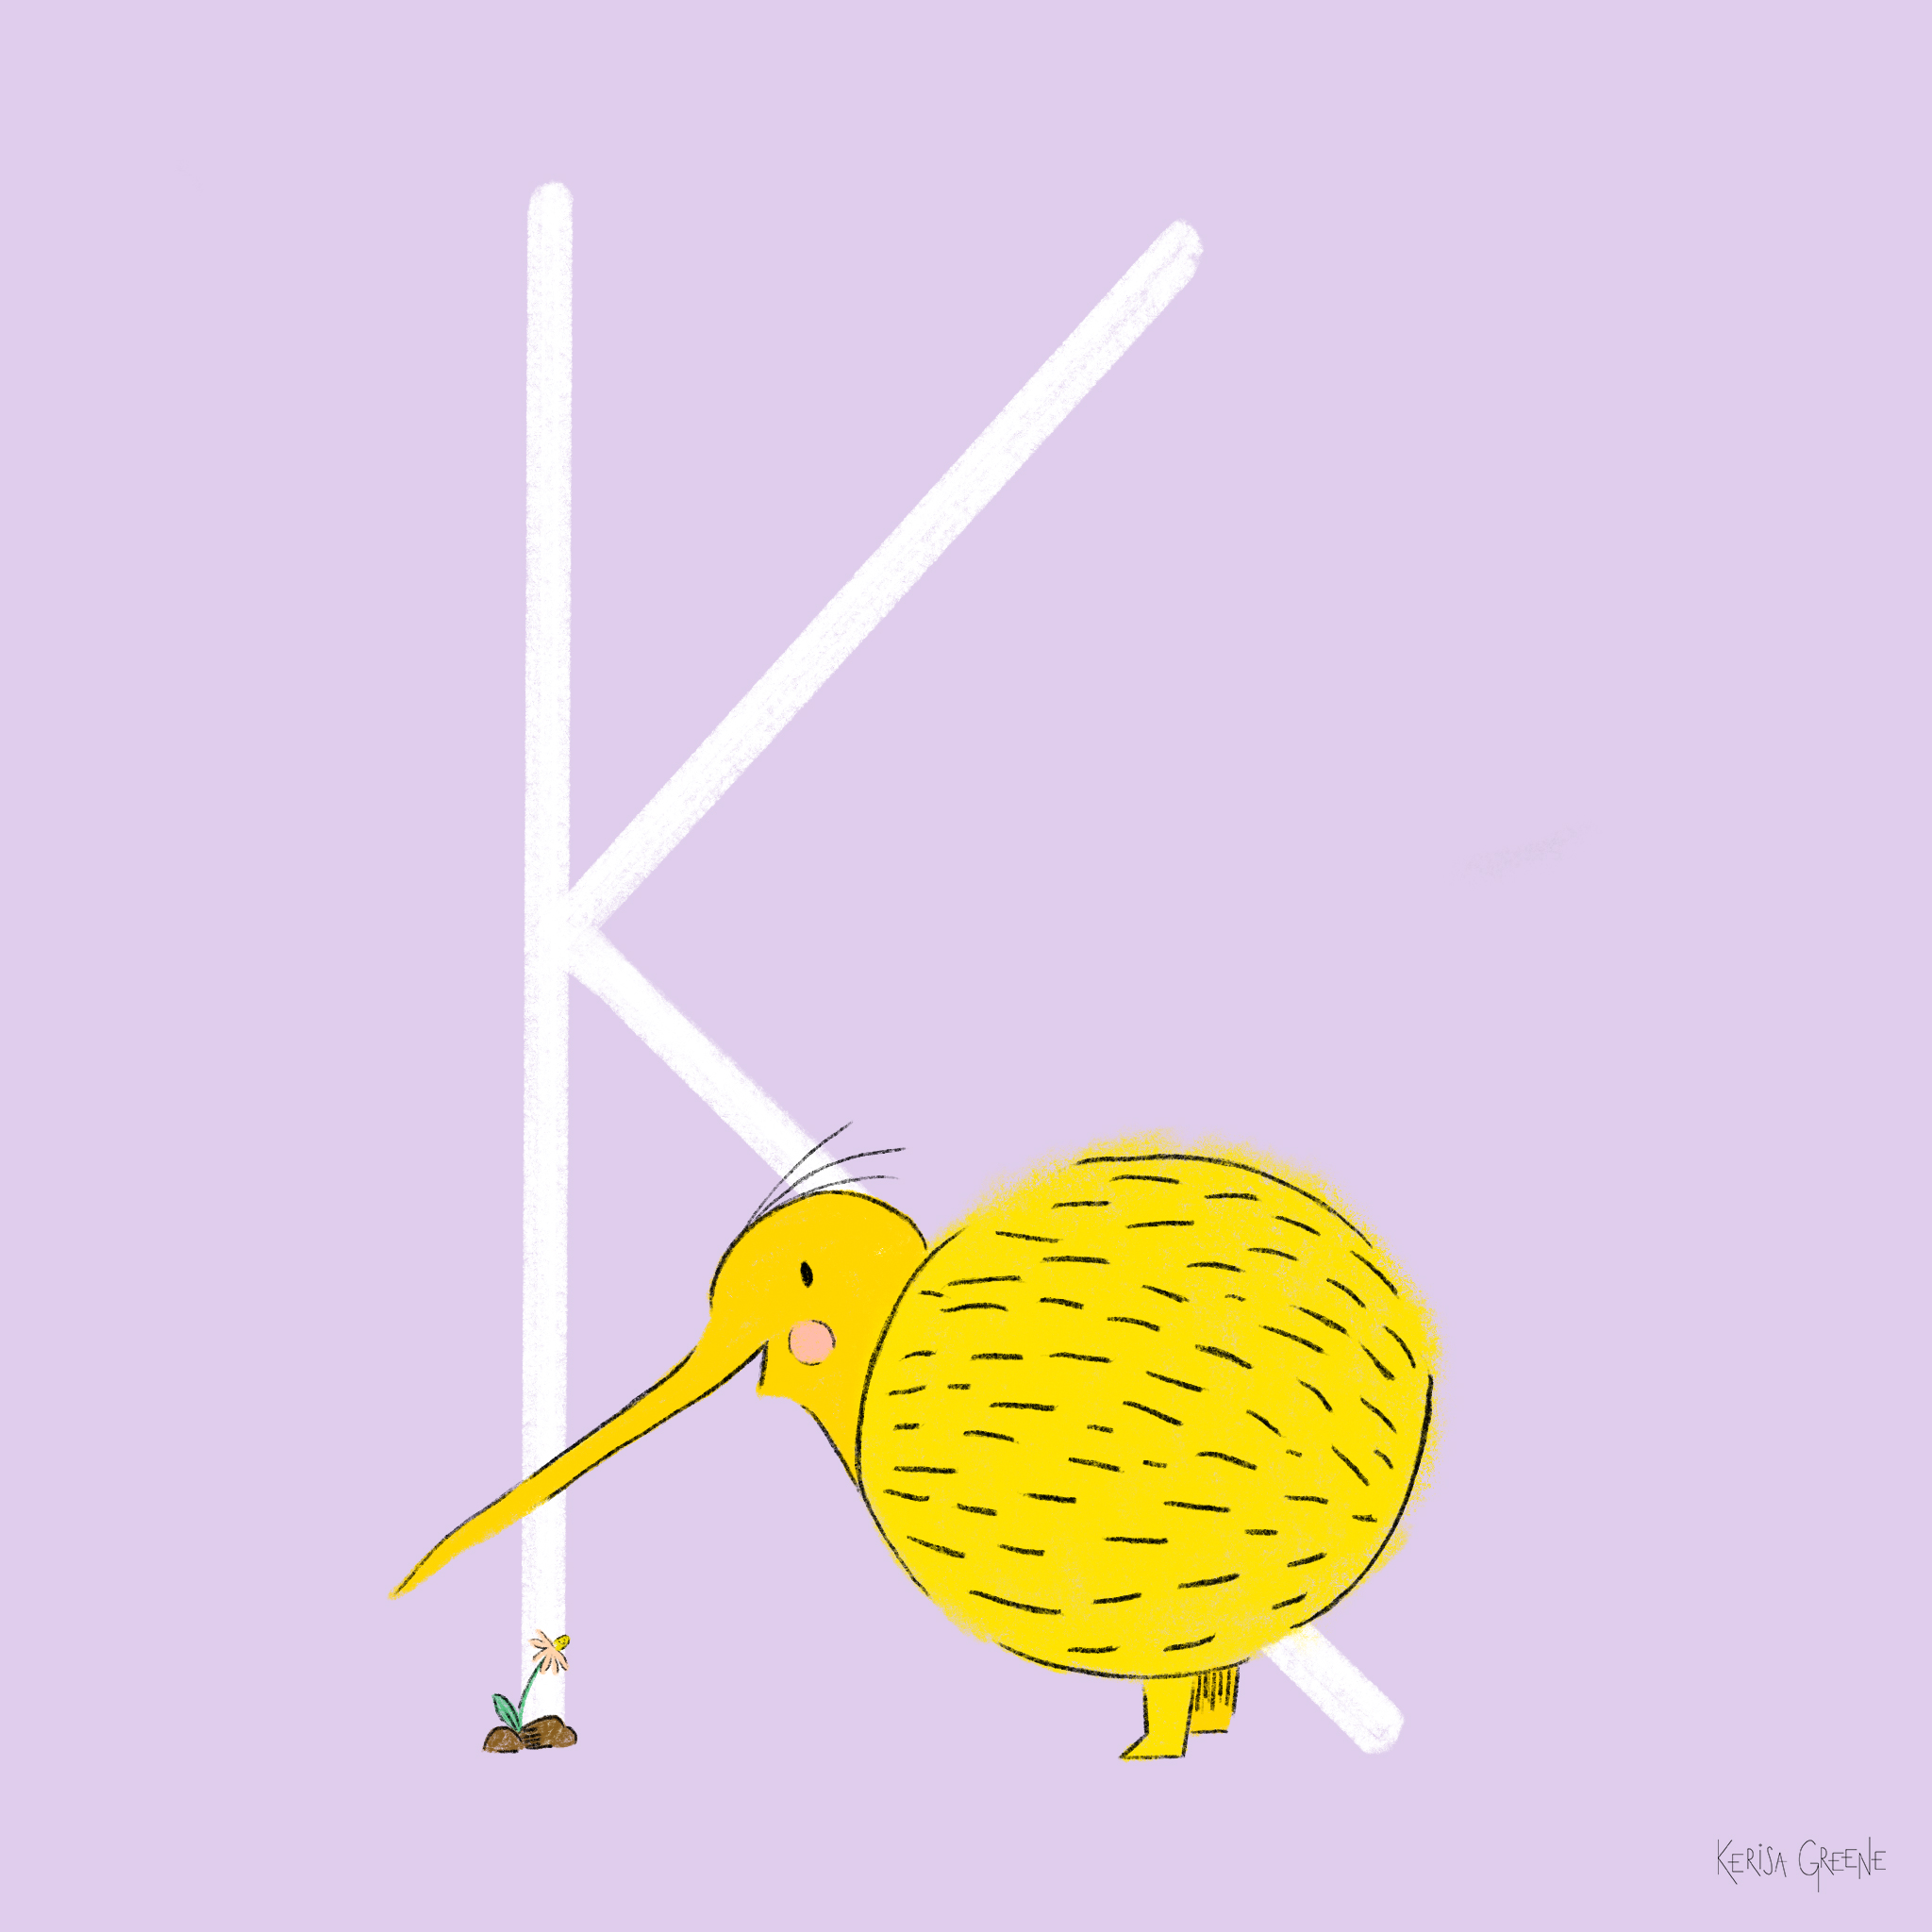 K is Kiwi Bird   These flightless birds tend to live as monogamous couples and are the only birds with nostrils at the end of their beaks!